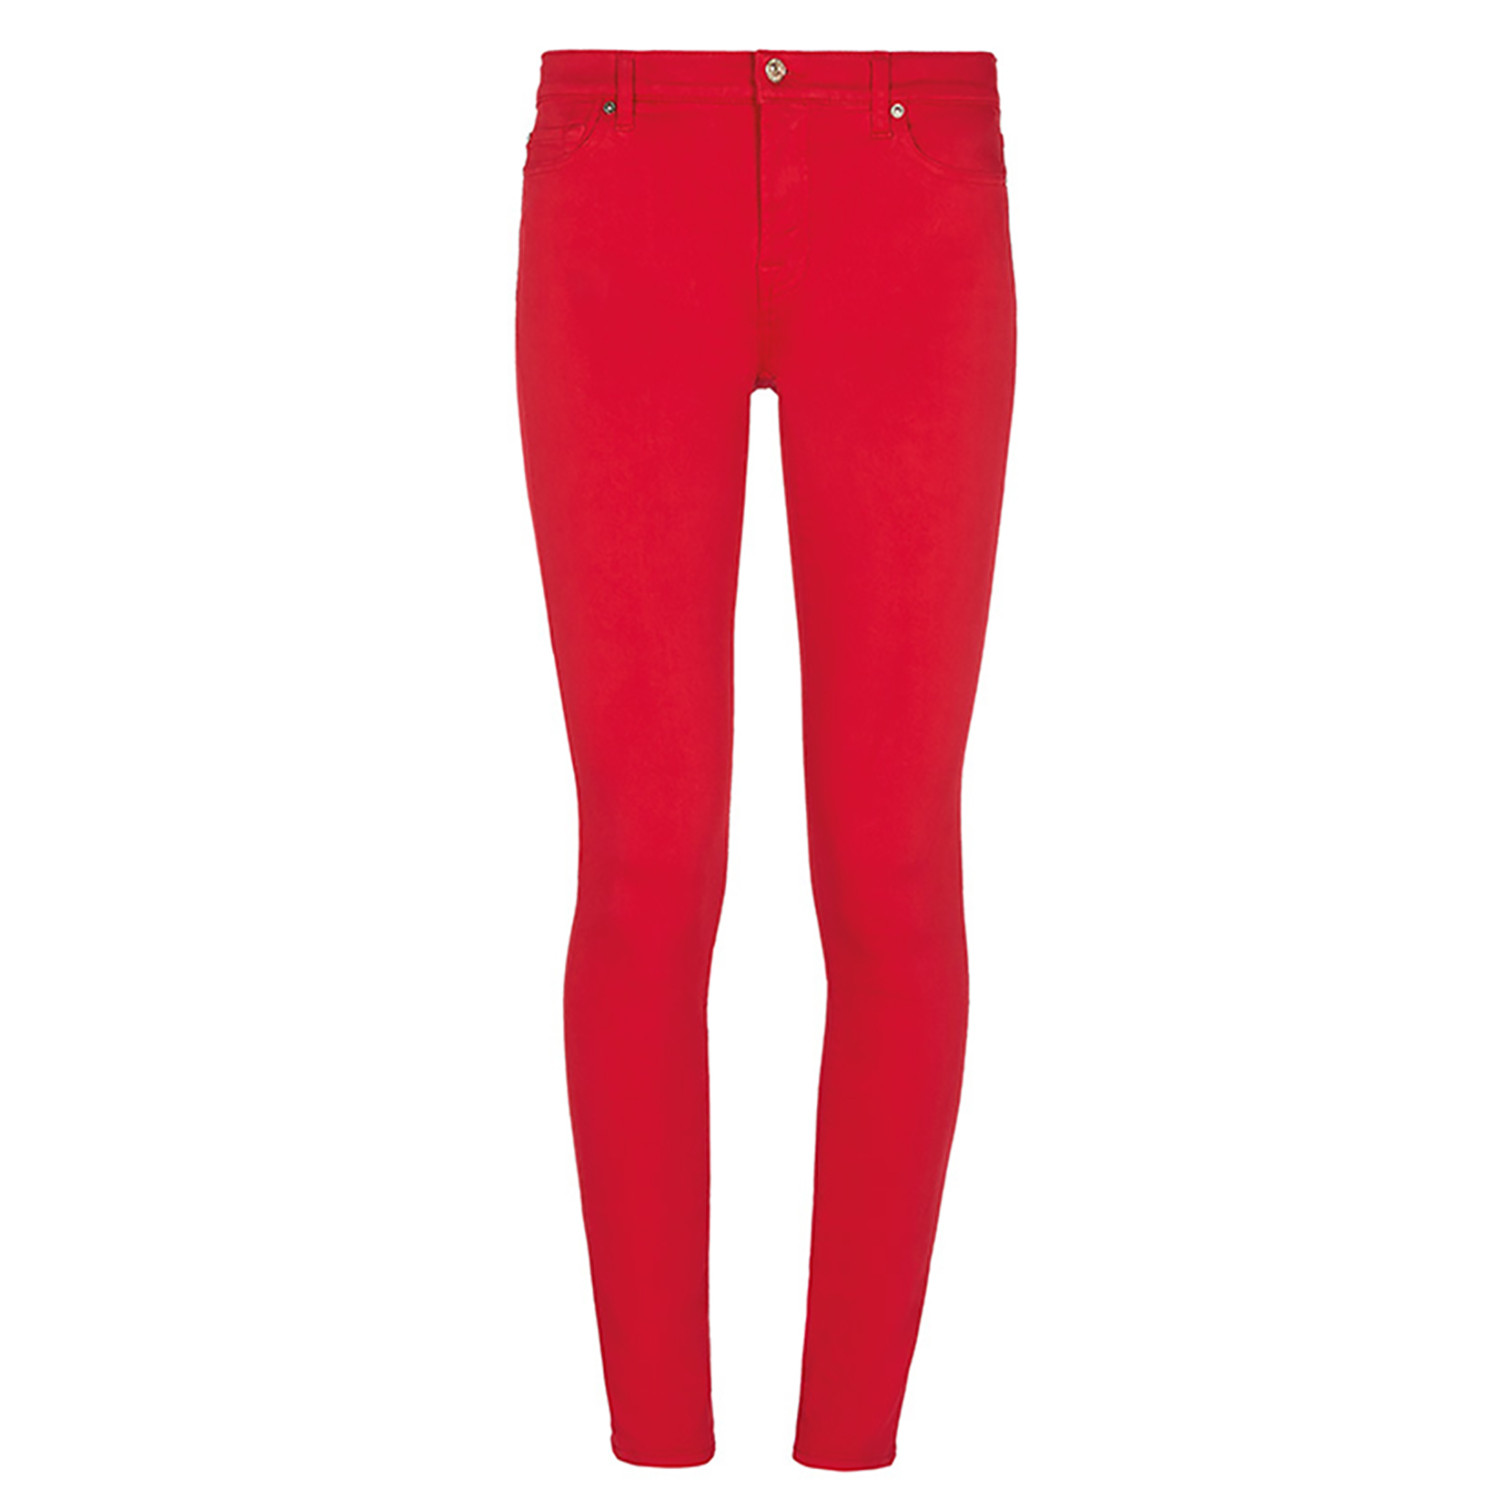 Afbeelding van 7 For All Mankind Jswt v500cr rood